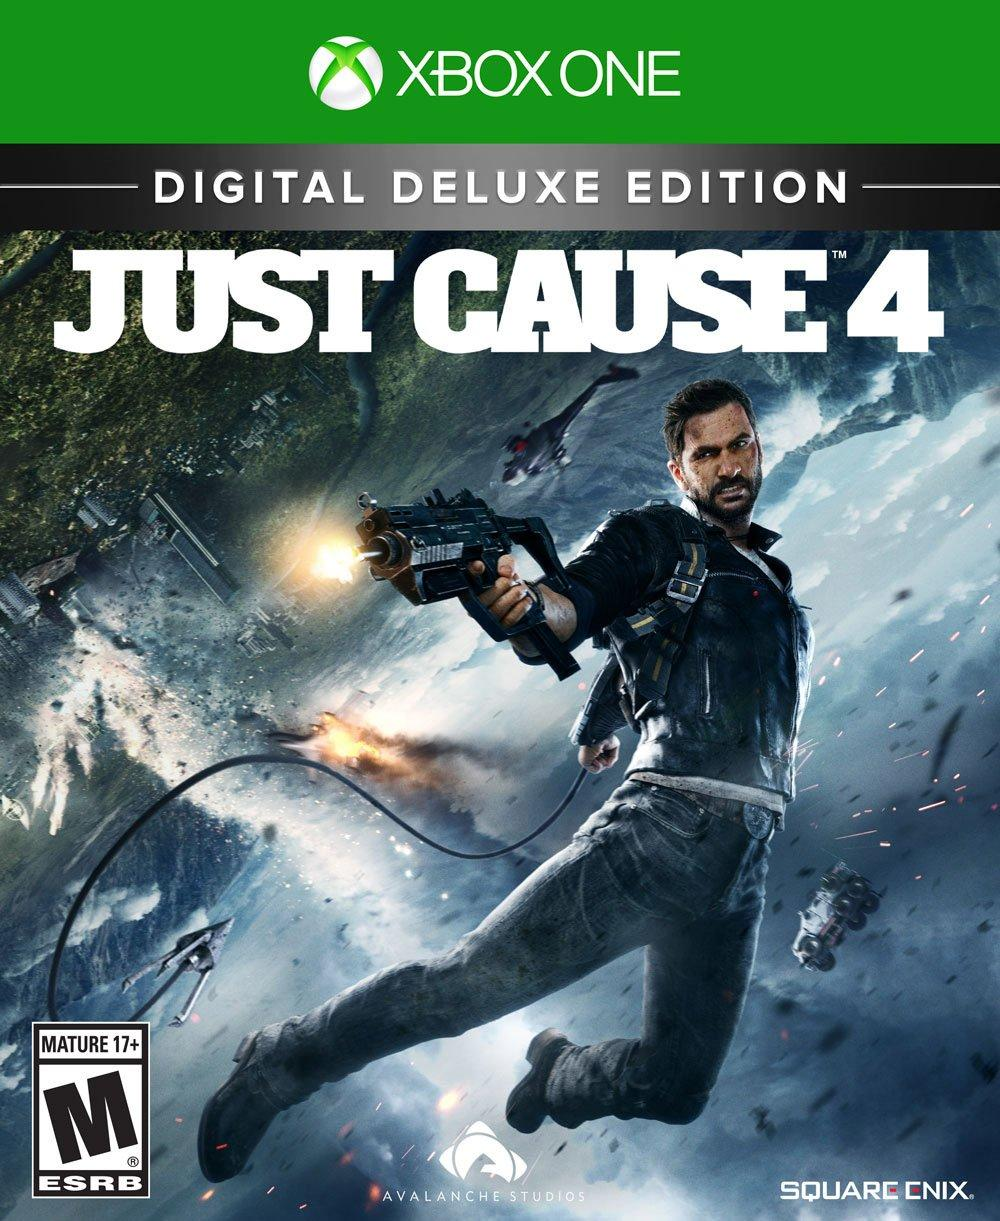 Just Cause 4 Digital Deluxe Edition Xbox One Gamestop